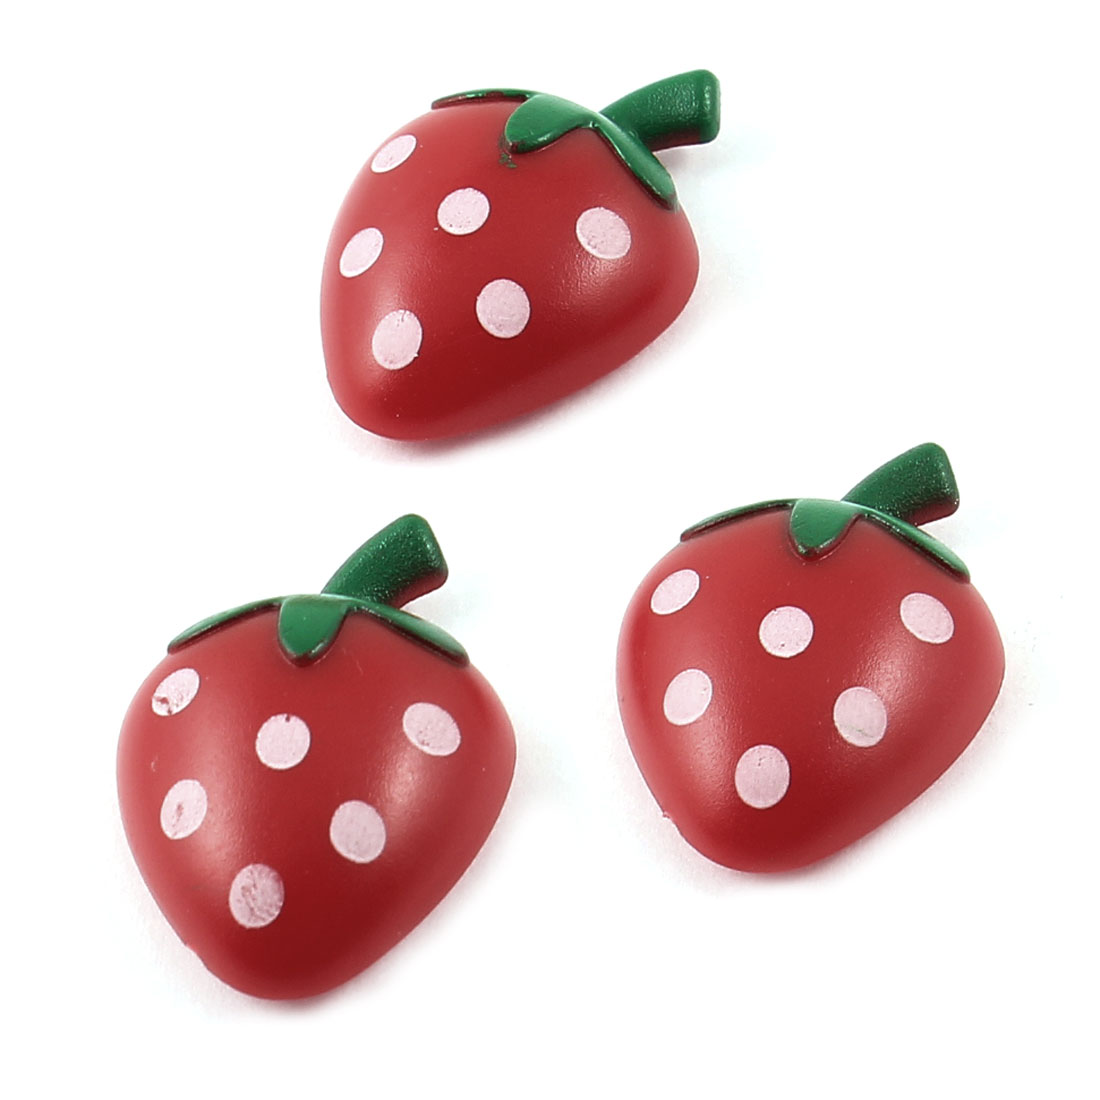 3 Pcs Red Green Plastic Strawberry Shaped Fridge Magnetic Sticker Ornament